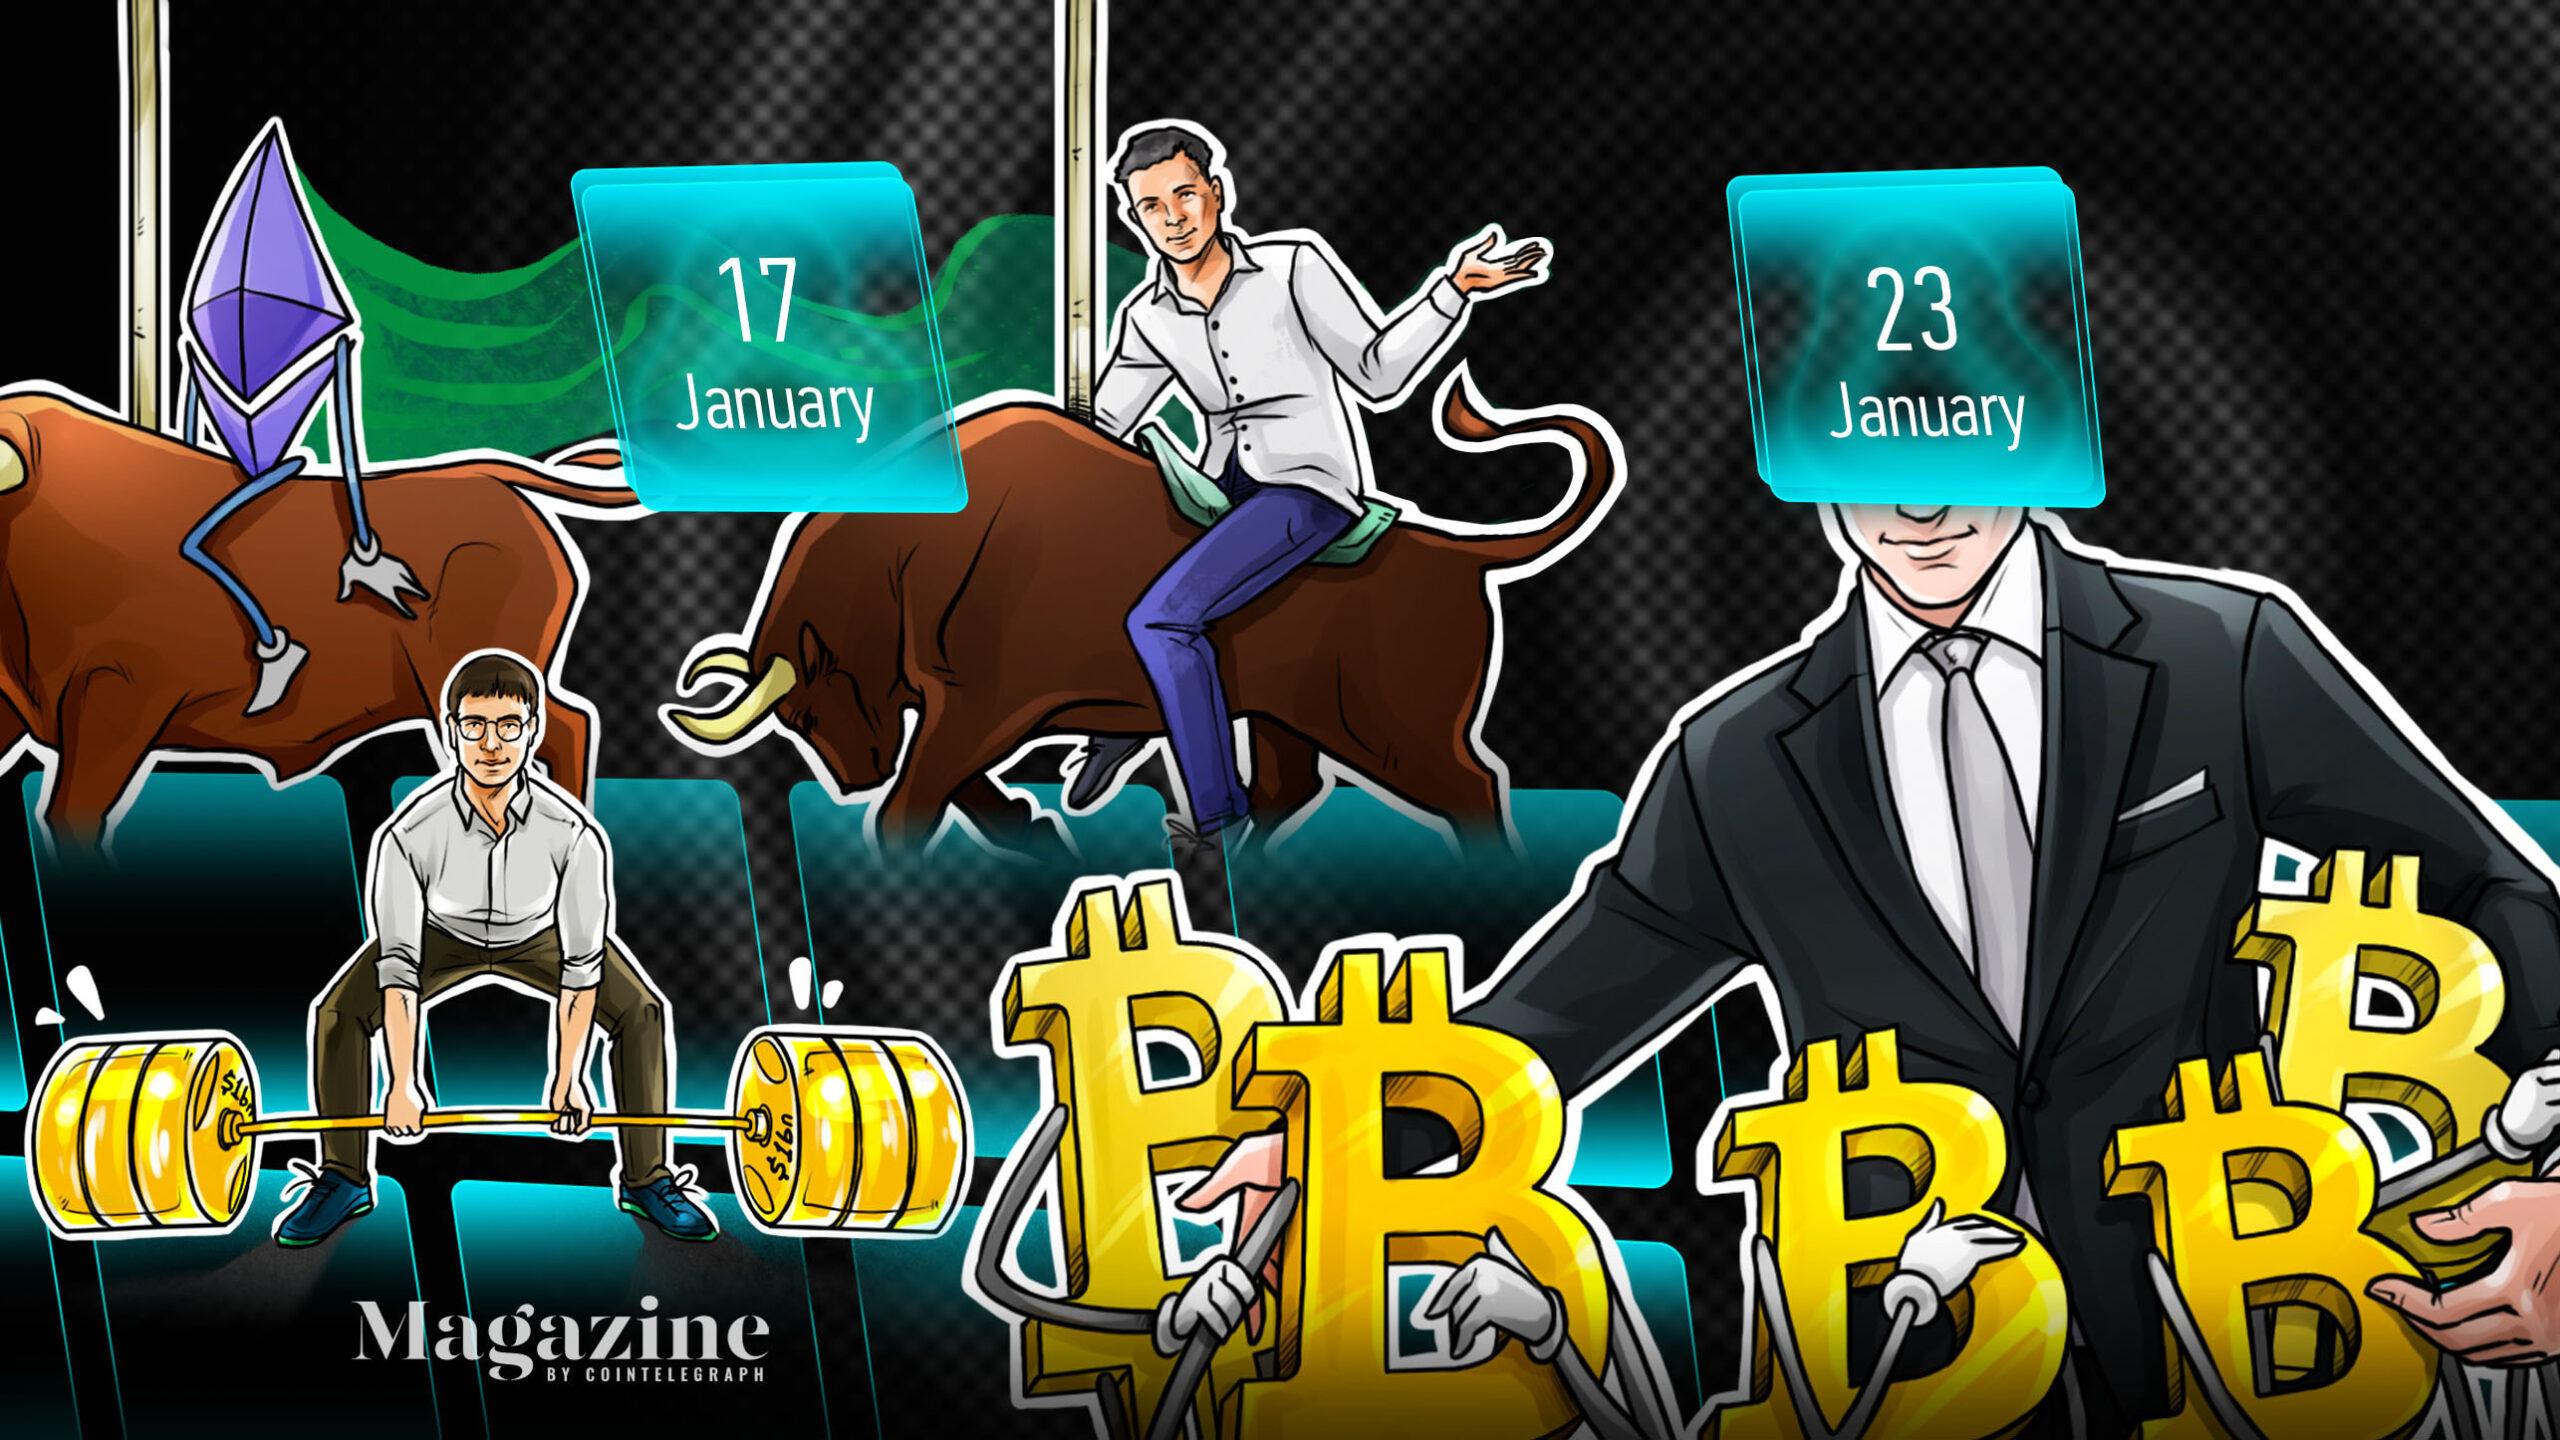 Bitcoin in jeopardy, Ether briefly breaks records, Biden takes action: Hodler's Digest, Jan. 17–23